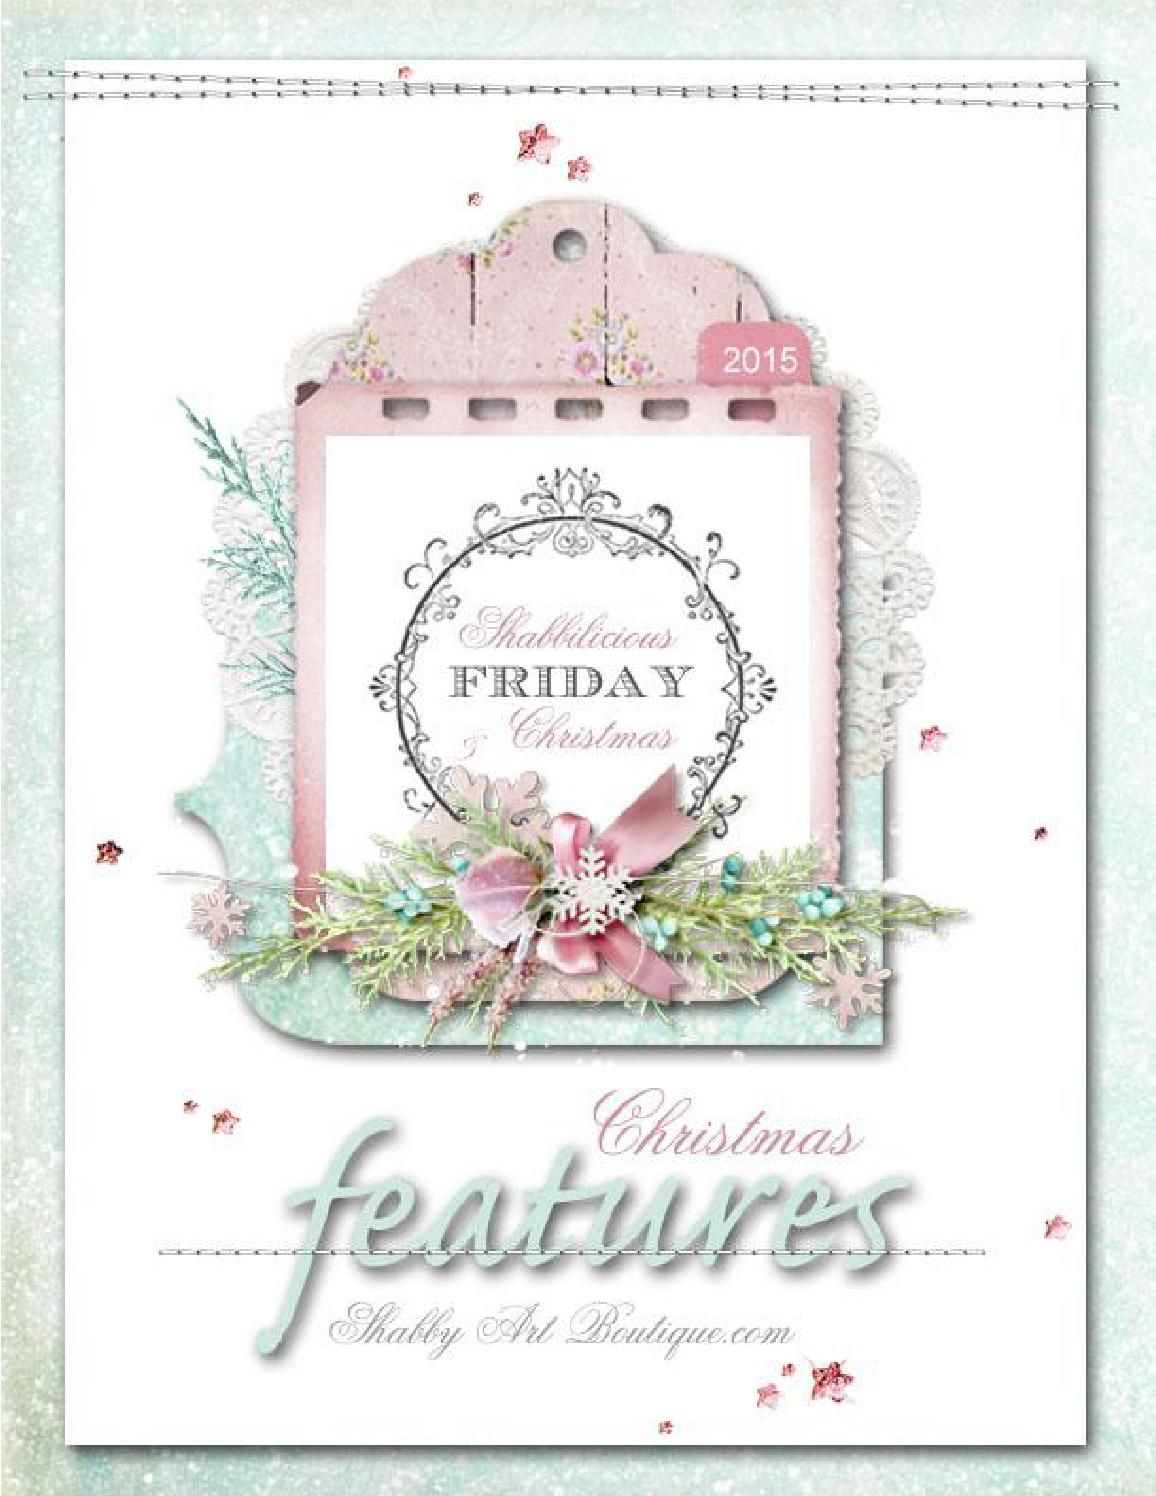 Shabbilicious Friday Christmas 2015 Link Party Features  The weekly Shabbilicious Friday Link Party is the place we come to each week to share anything pretty like romantic cottage, shabby chic, vintage, farmhouse, transformations, decorating & DIY, room reveals, vintage finds, French inspired loveliness, yummy recipes . . . and anything else that will make our shabby hearts sing! Please enjoy this collection of our favourite features from Christmas 2015.